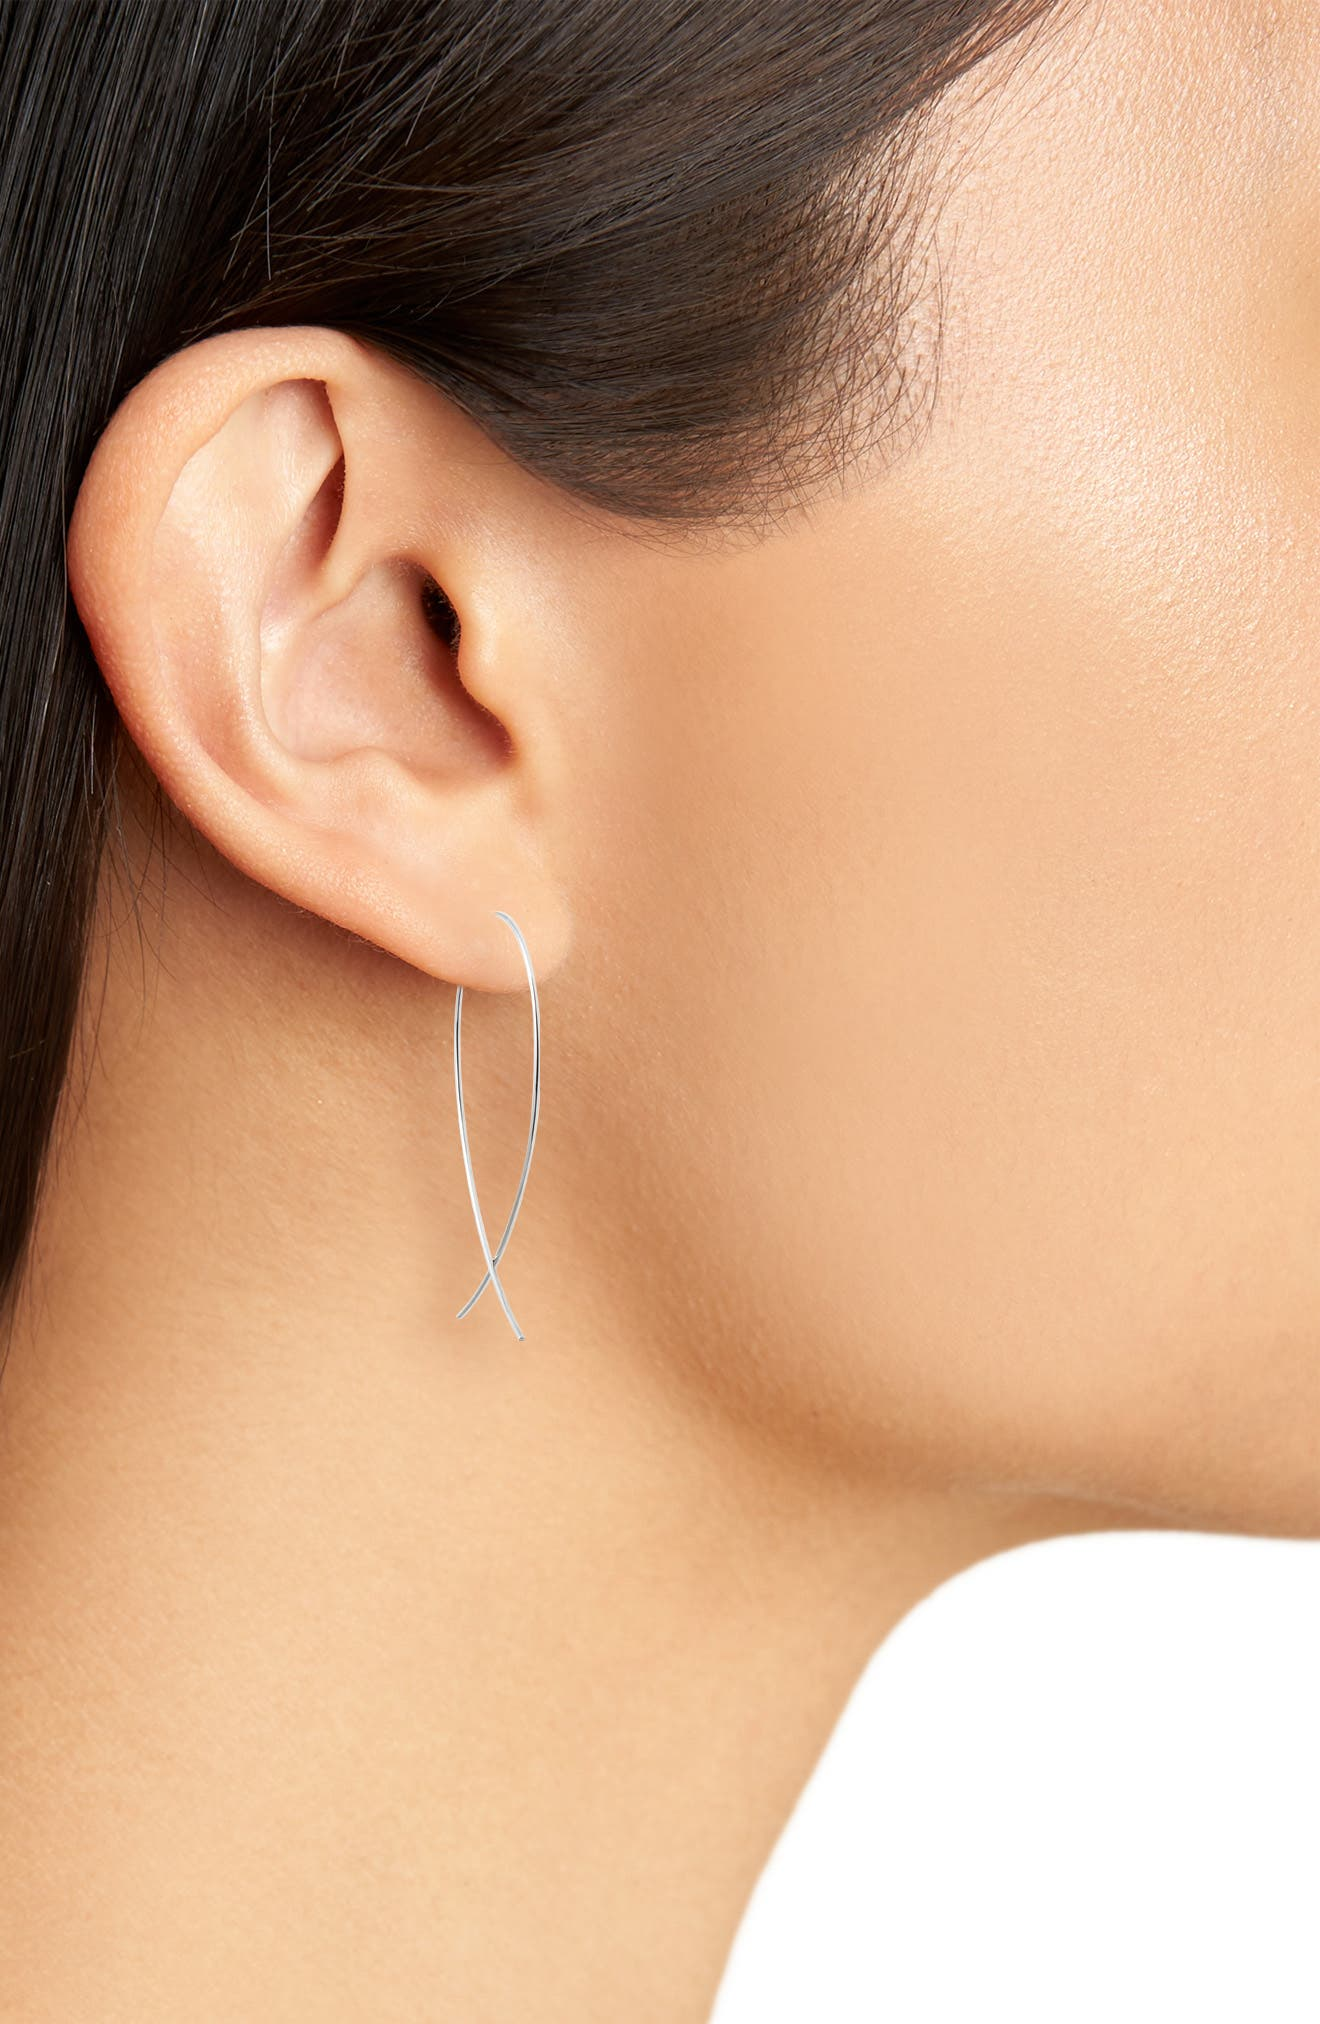 Alternate Image 2  - Lana Jewelry 'Upside Down' Small Hoop Earrings